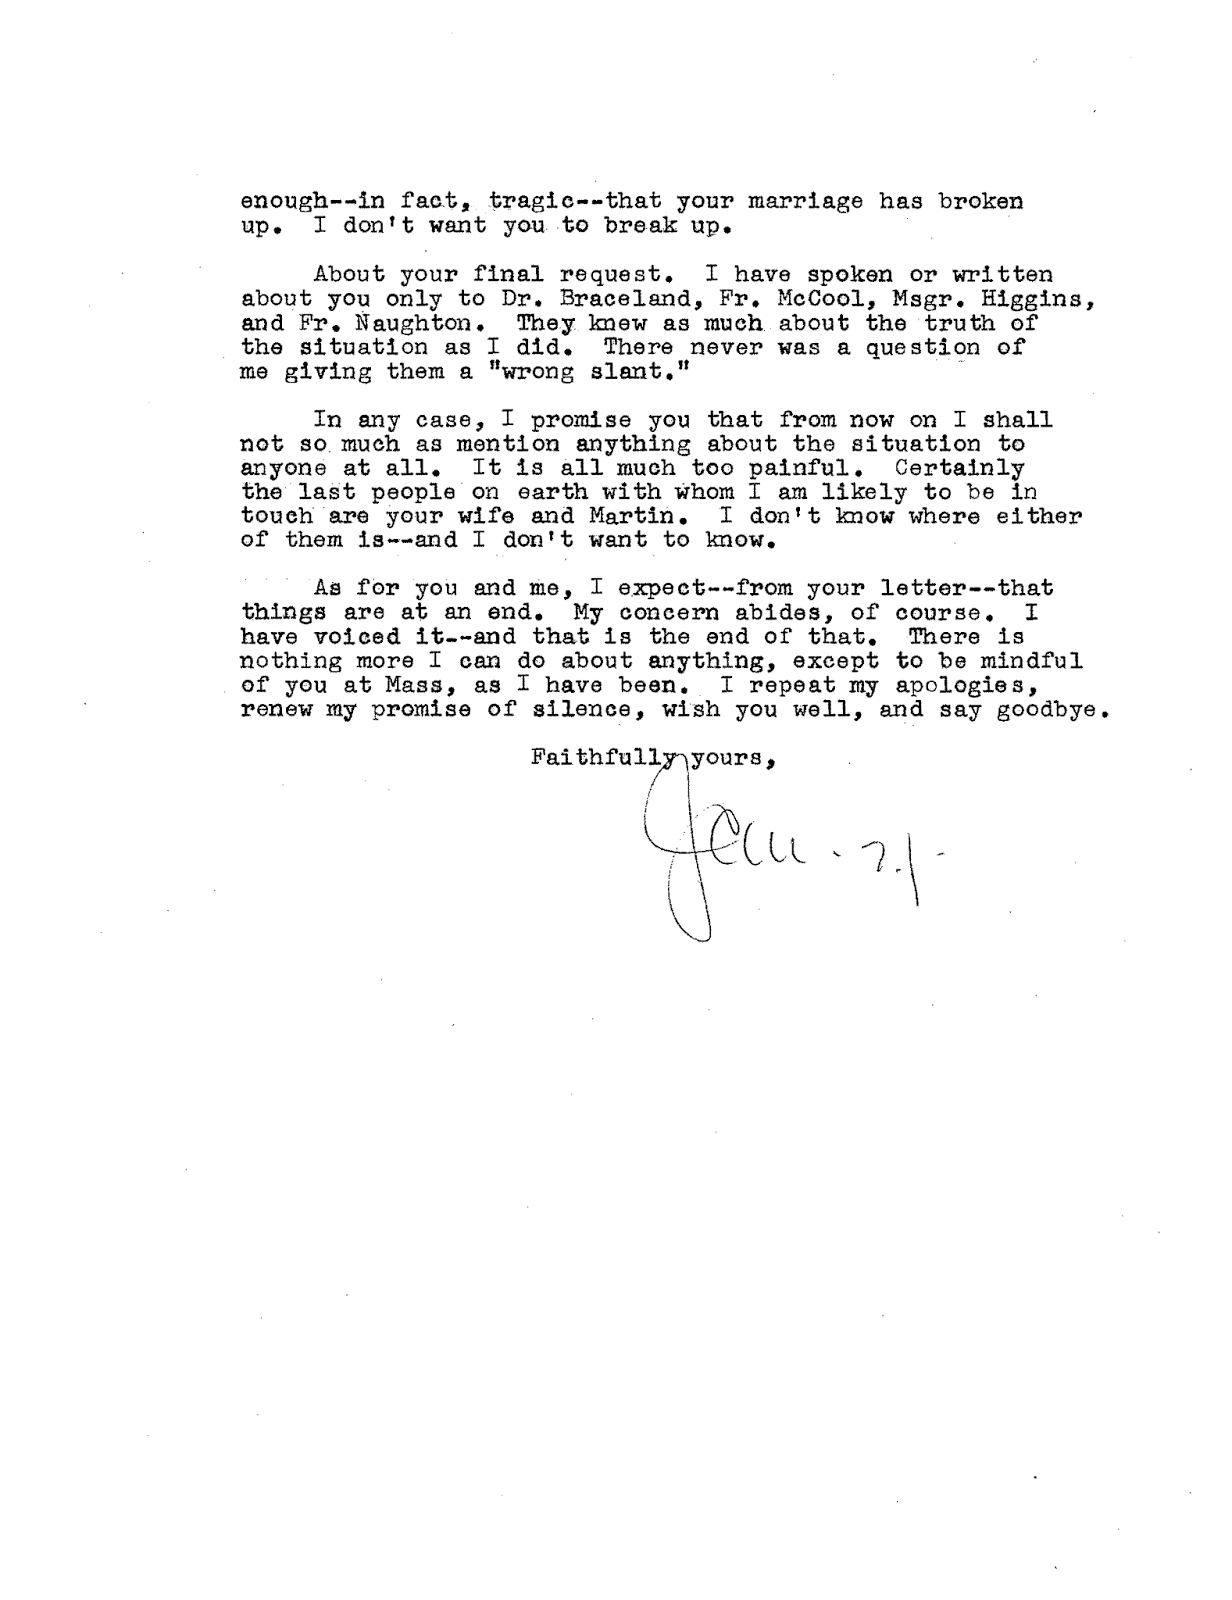 Murray's letter page one